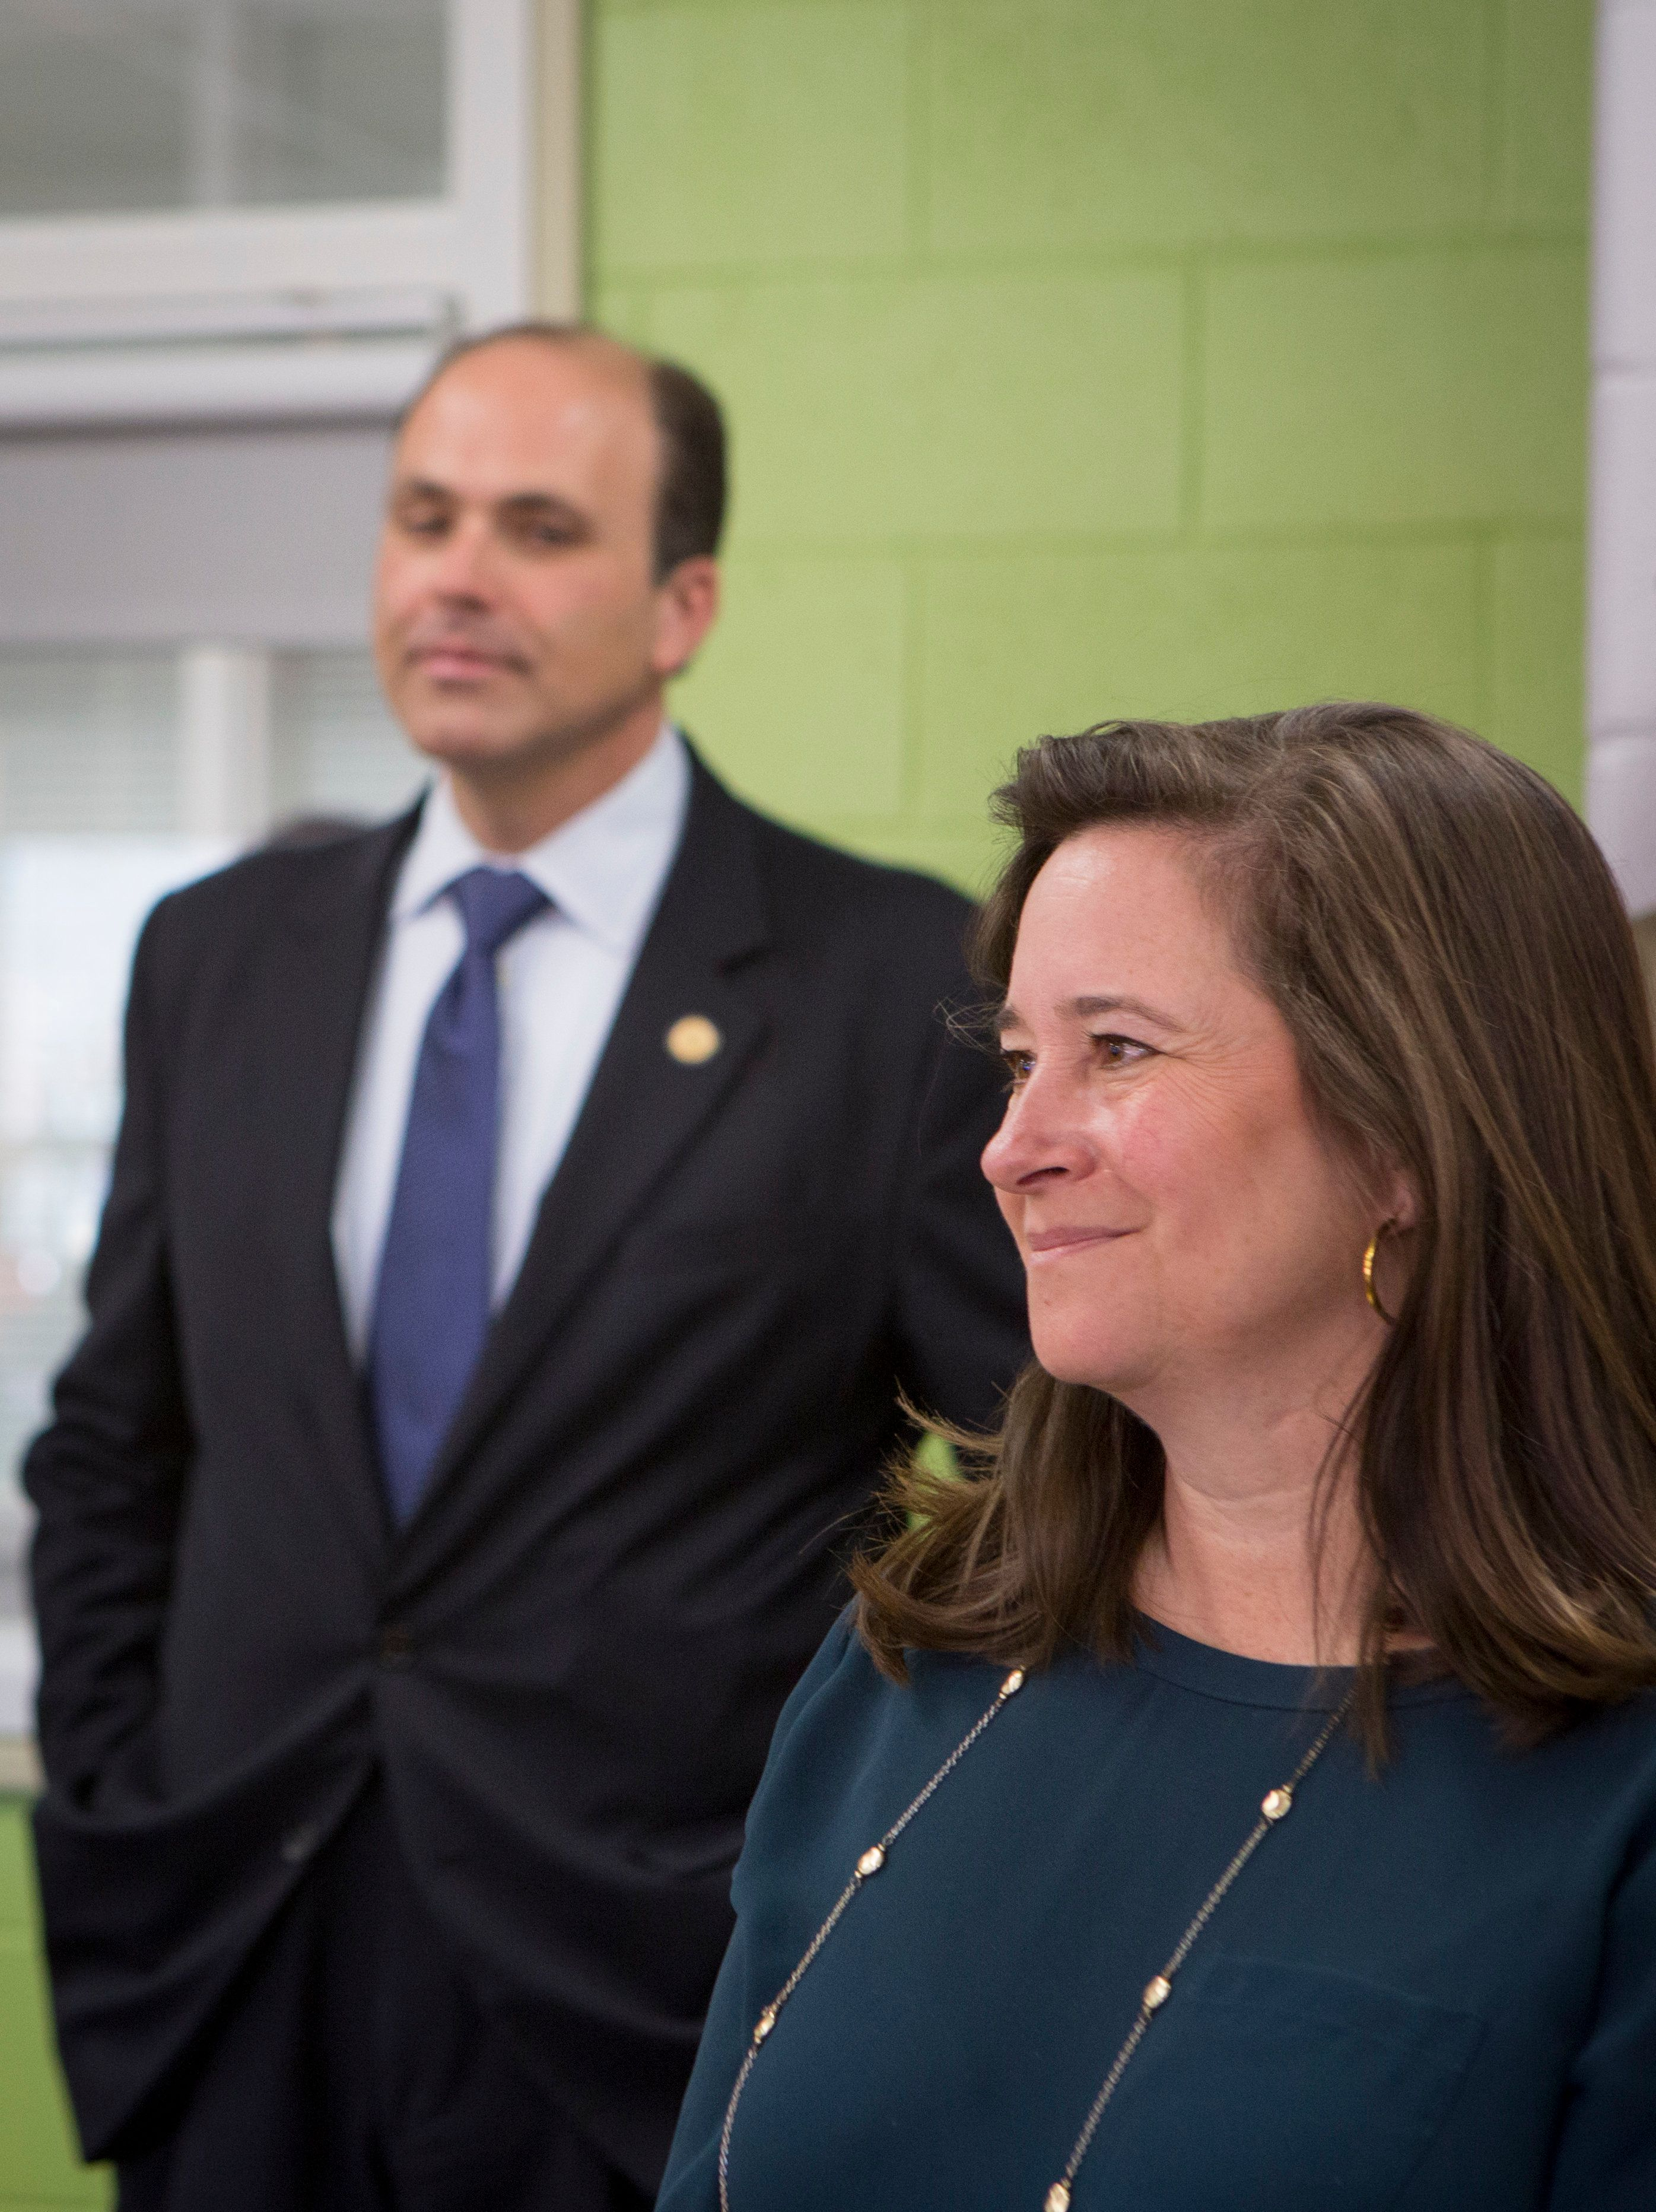 NEWPORT NEWS, VA - November 28:  Republican David Yancey and Democrat Shelly Simonds attend a 'take your legislator to school day' Tuesday, November 28 at Heritage High School in Newport News, Va. Yancey leads Simonds by ten votes in the 94th District in the Virginia House of Delegates race. (Photo by Julia Rendleman for The Washington Post via Getty Images)